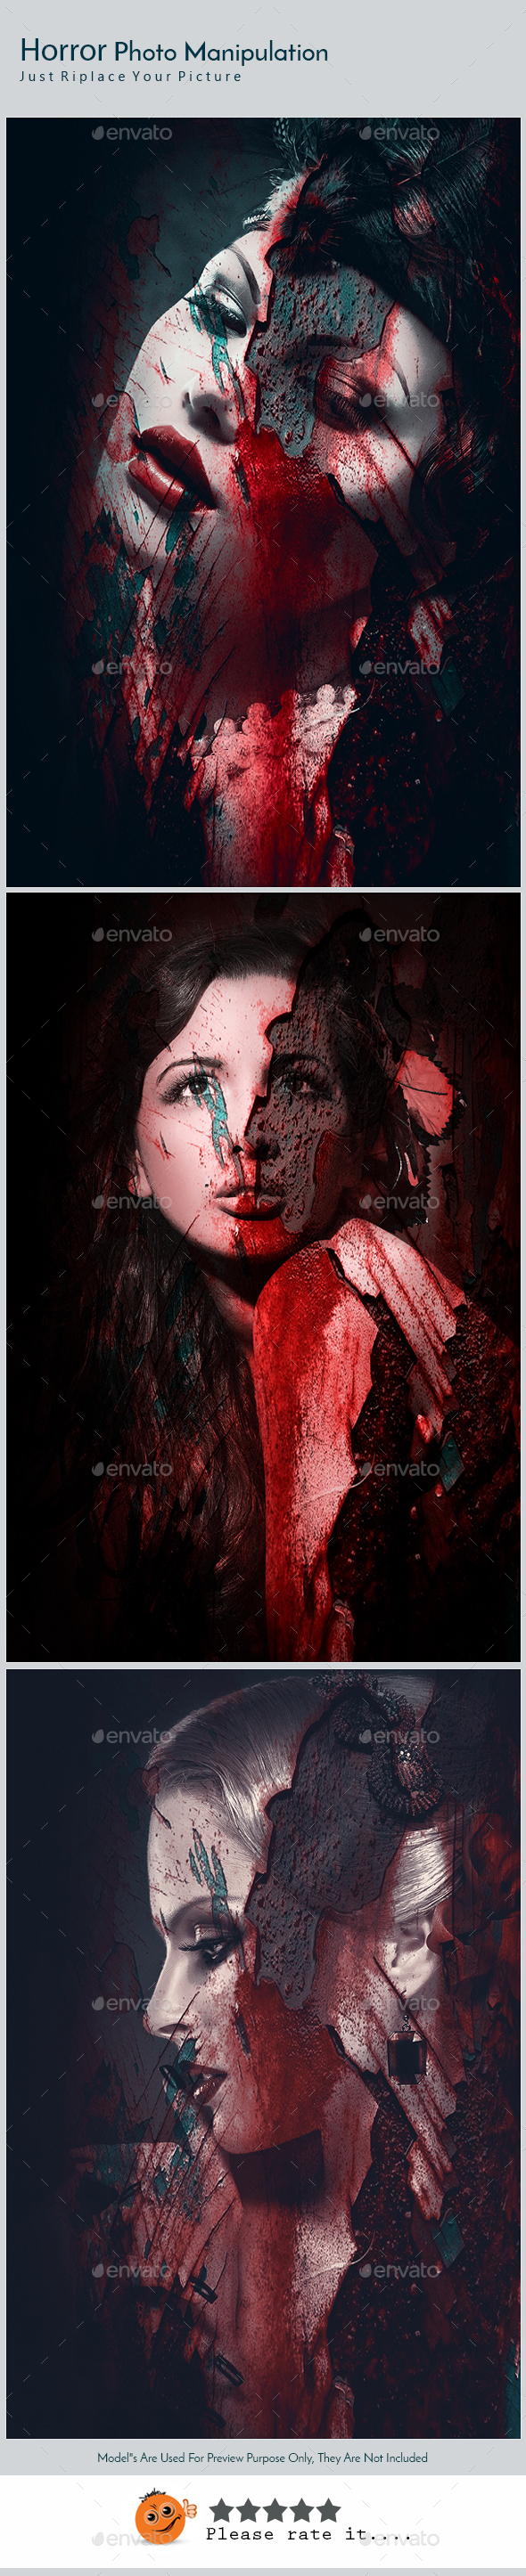 Horror Photo Effect Template v03 - Photo Templates Graphics